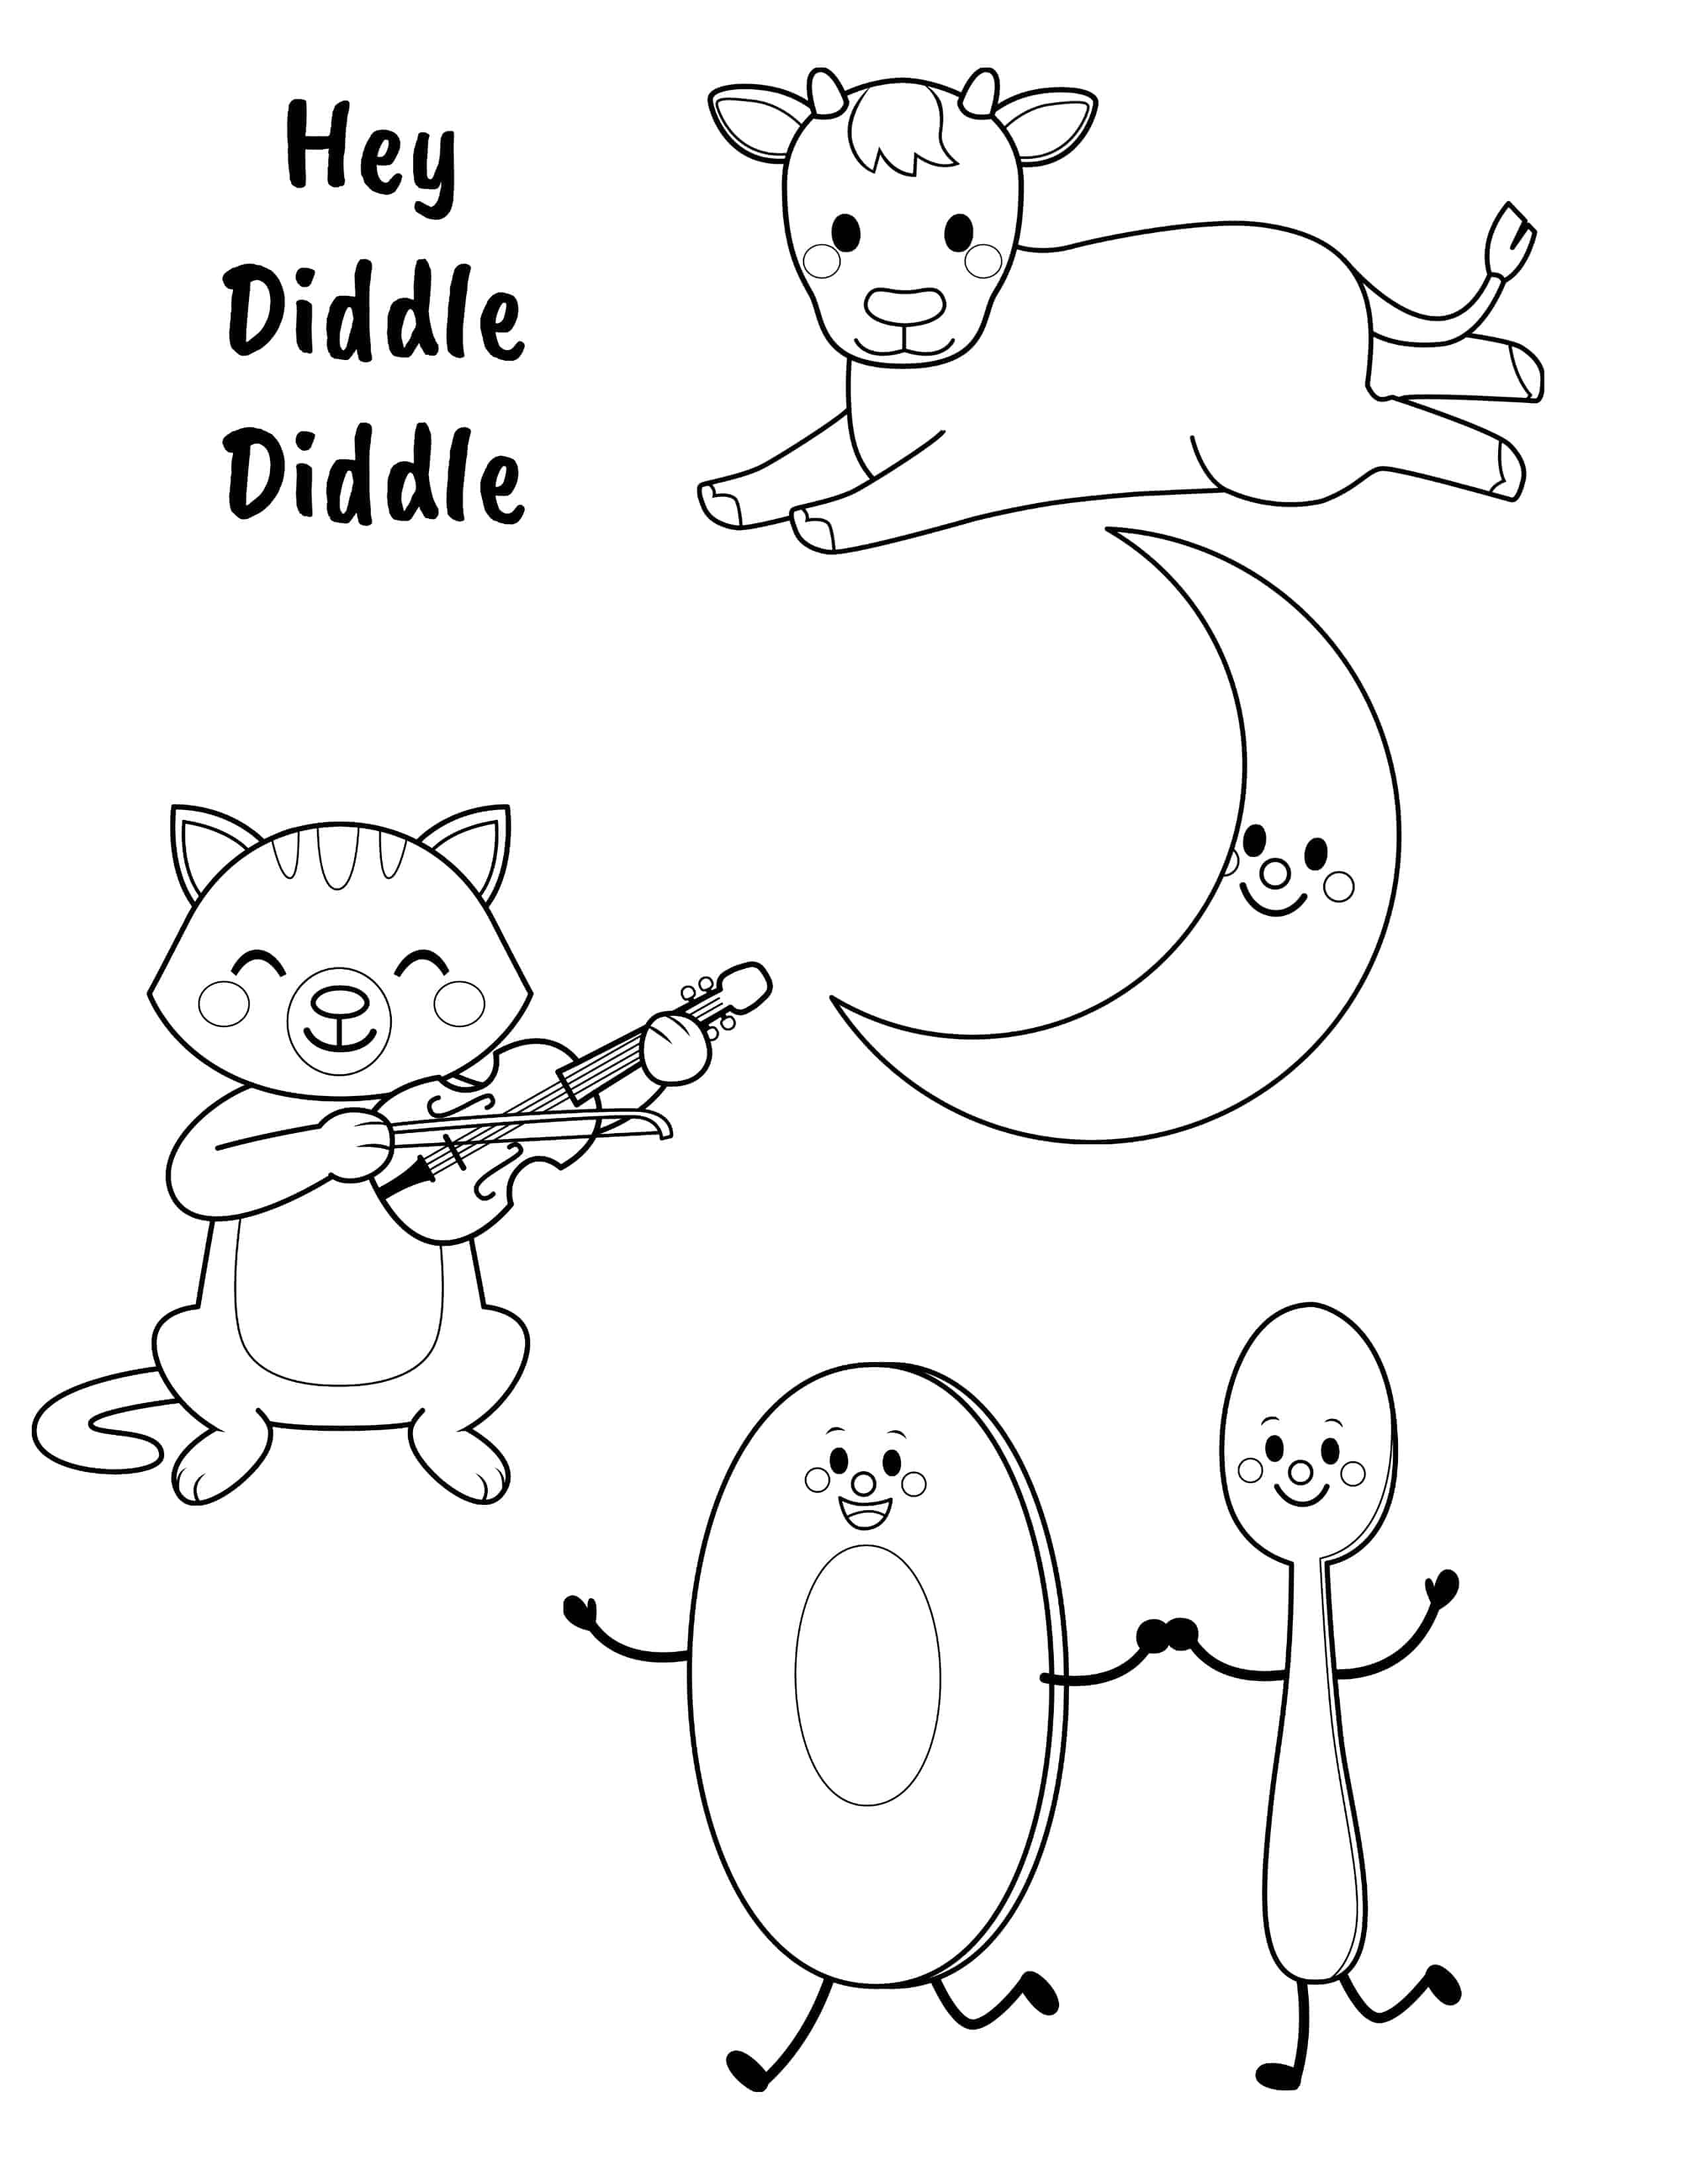 coloring sheet diddle diddle hey